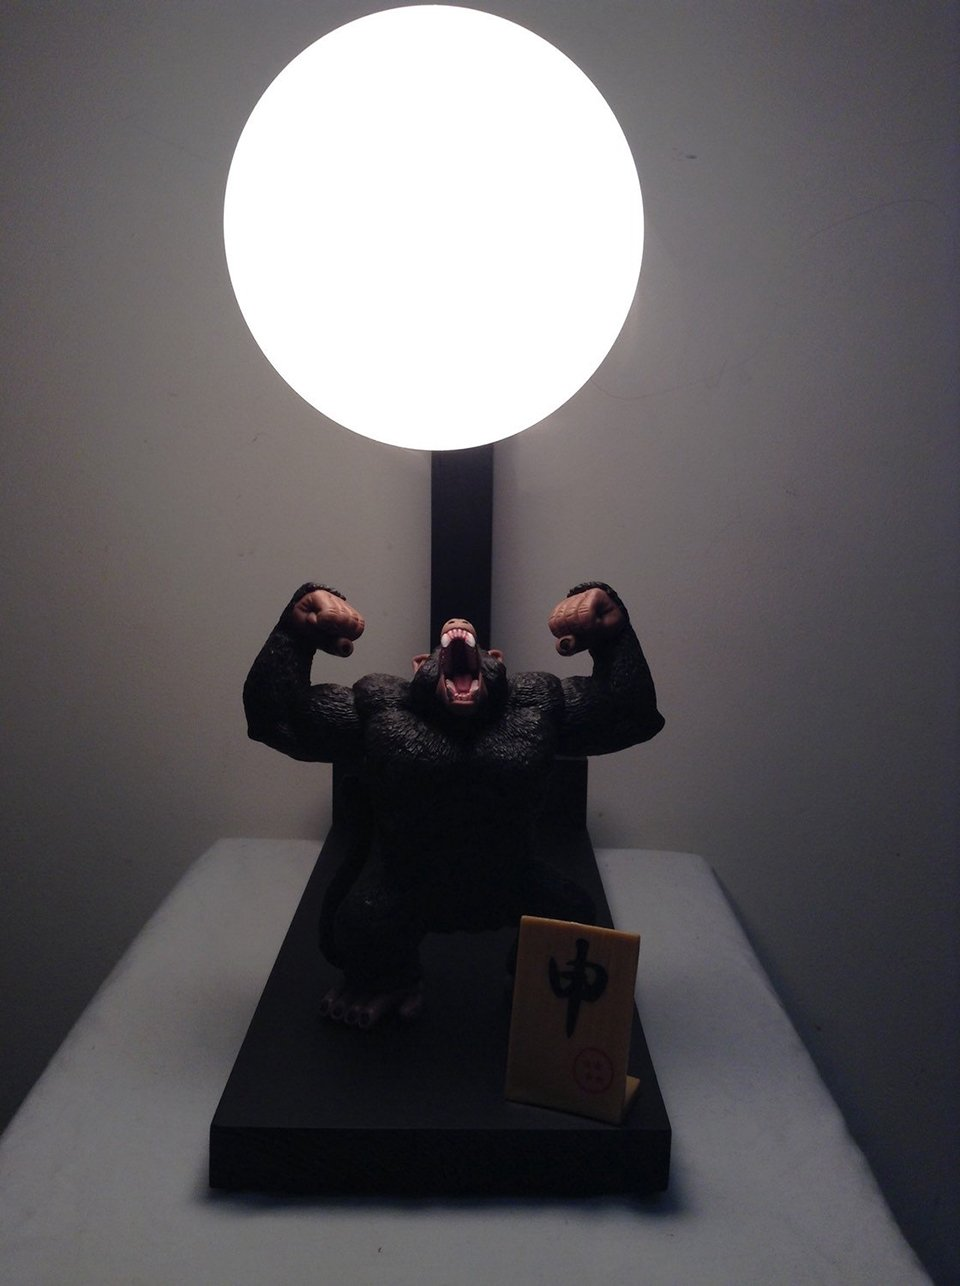 Wooden Lamp Stand Designs : Dragon ball z action figure lamps lamelamelaaaamp